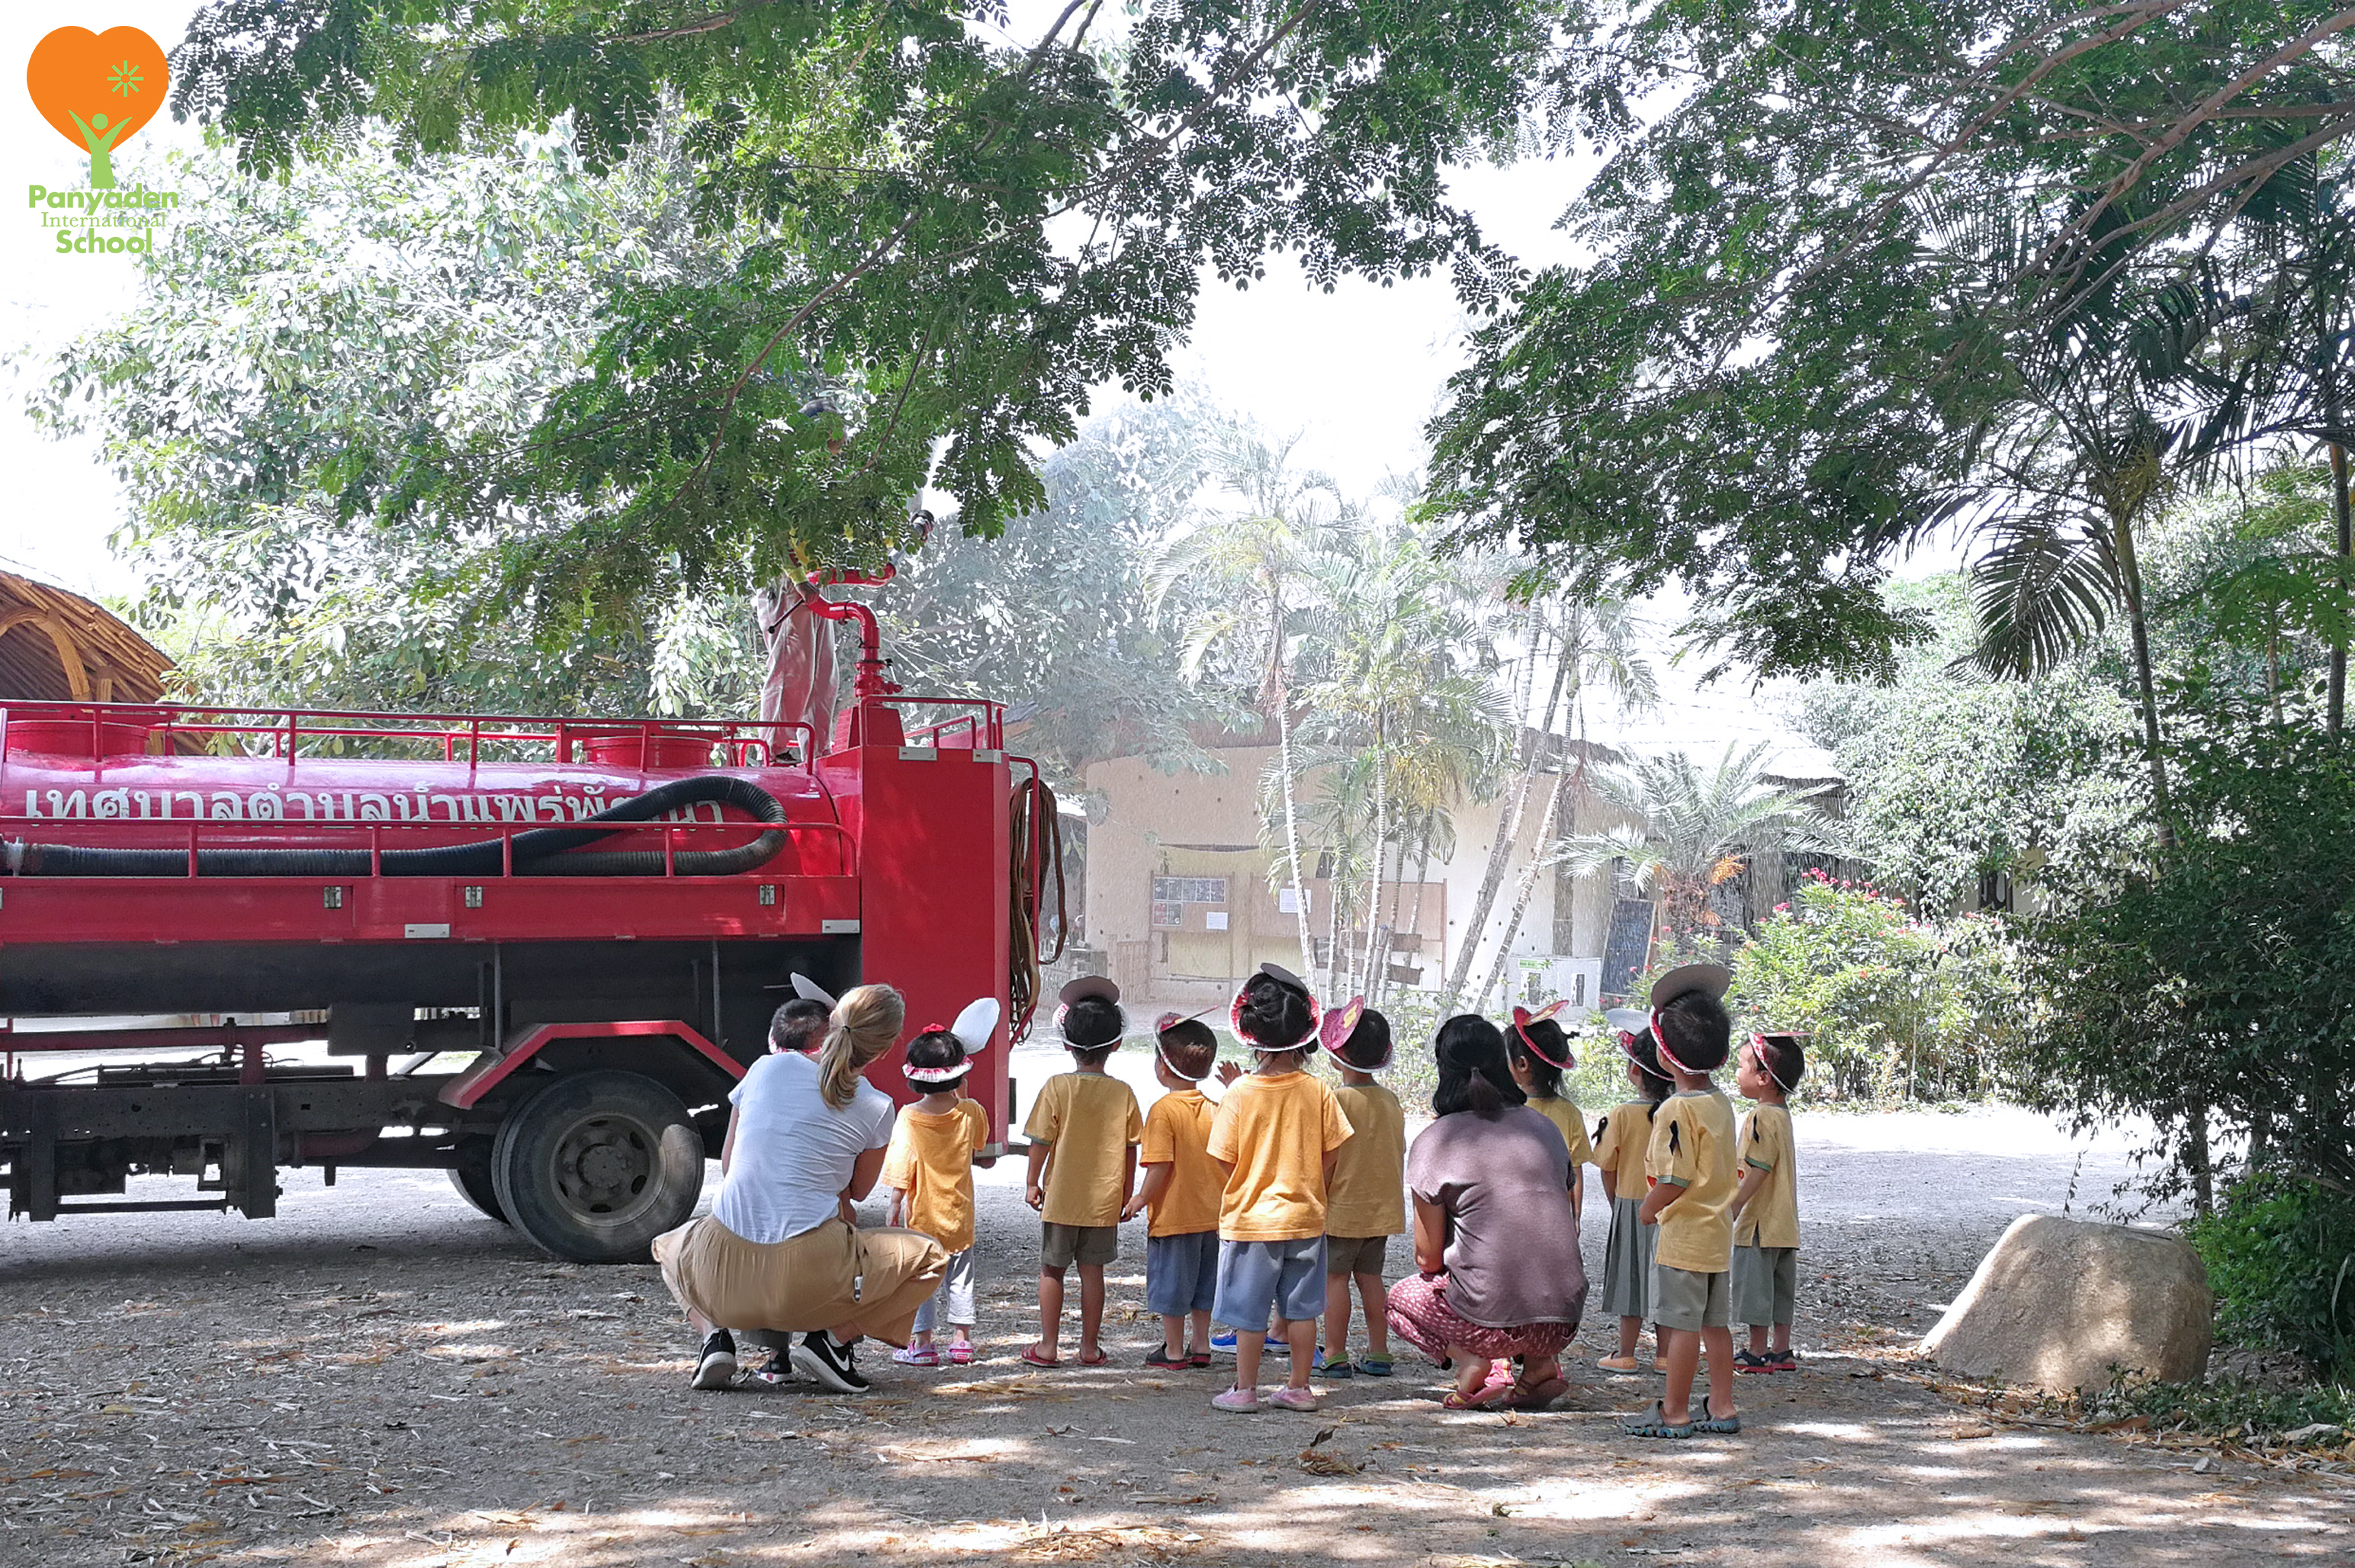 Panyaden Nursery students waiting for fire truck at school as part of their Little Explorers unit